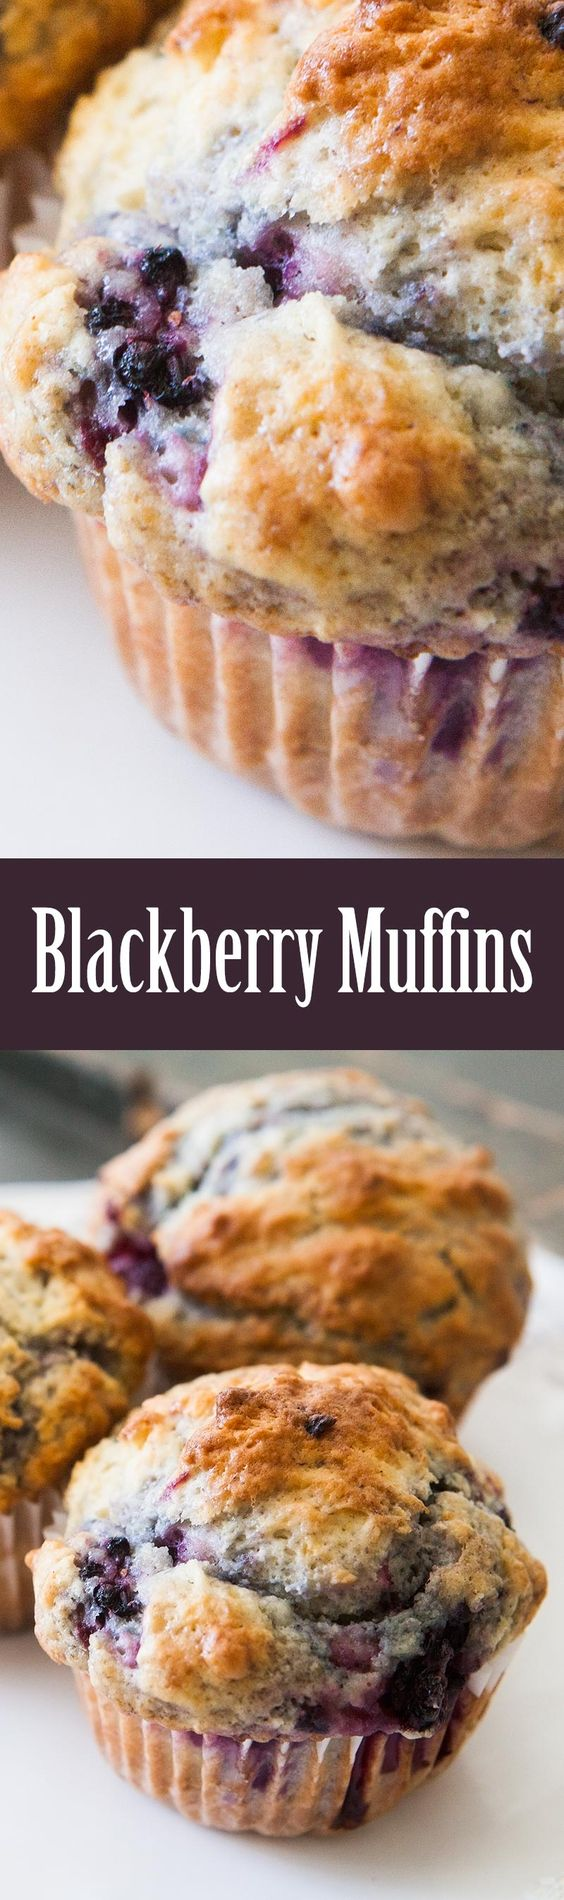 Blackberry Muffins | Recipe | Blackberry Muffin, Blackberries and ...